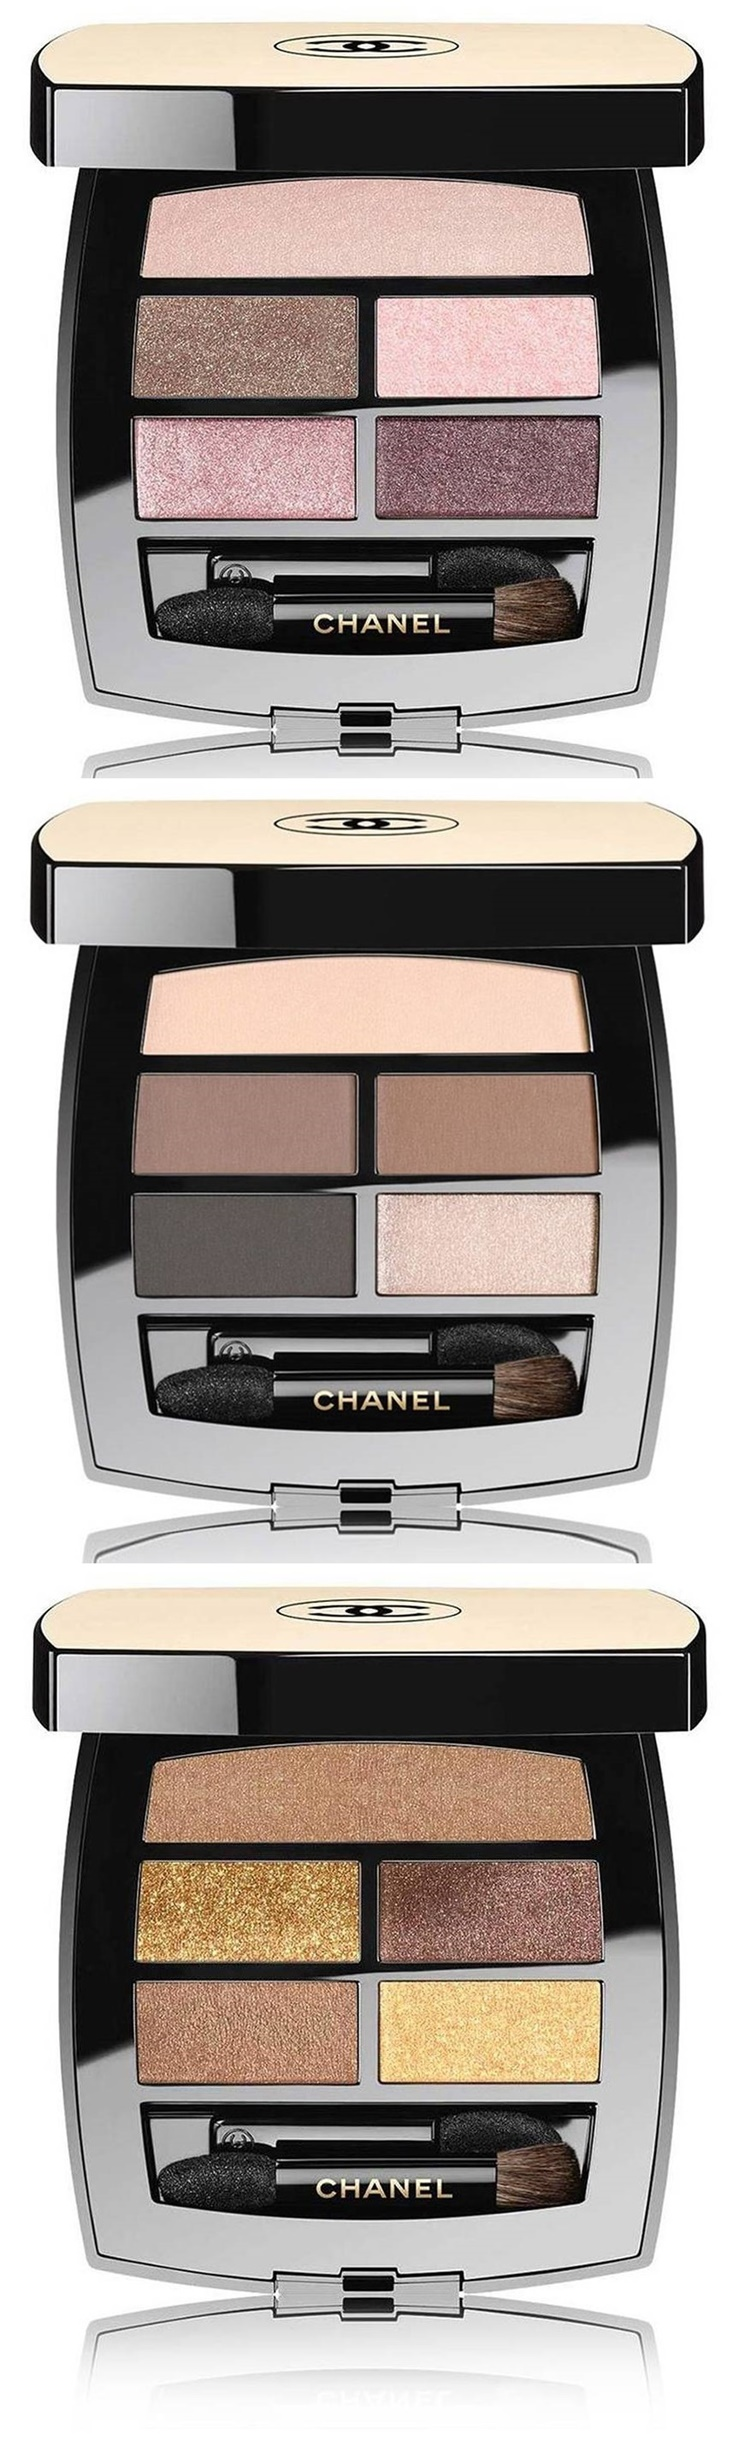 728d91e4a35 Chanel Les Beiges Healthy Glow Natural Eyeshadow Palette Extends Shade  Selection